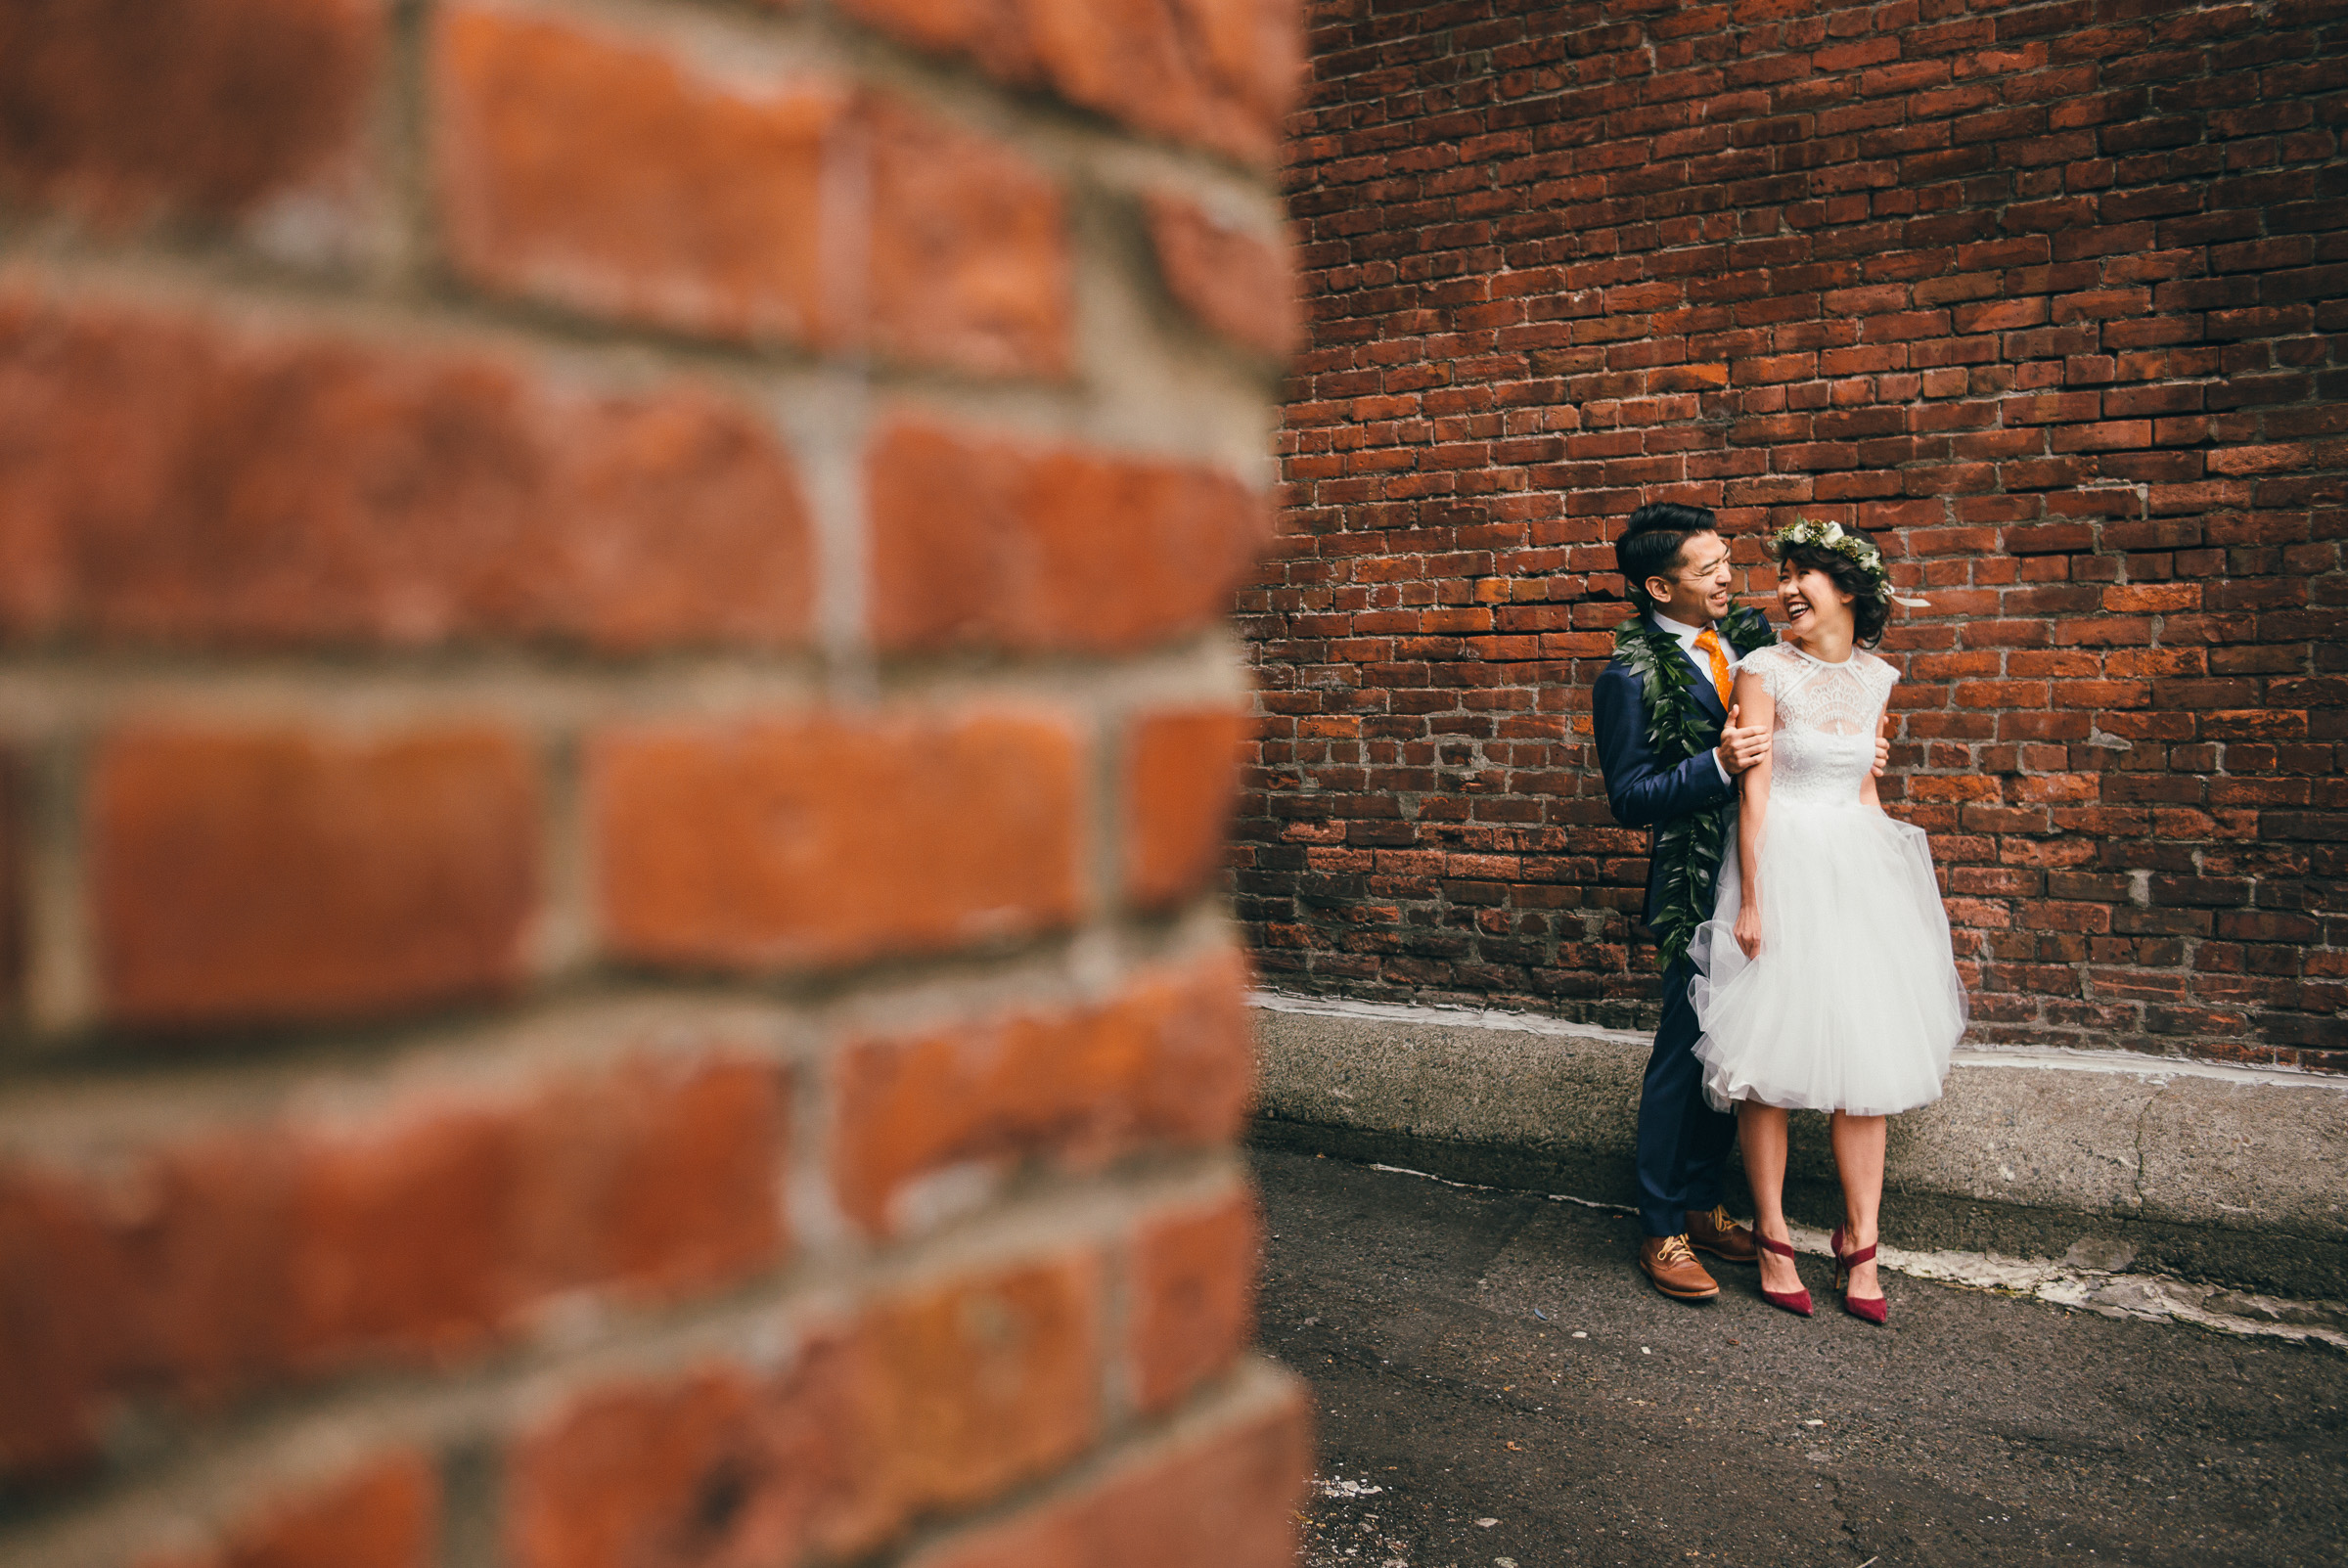 Asian Wedding Couple Portrait Against Brick Building in Pioneer Square, Seattle.